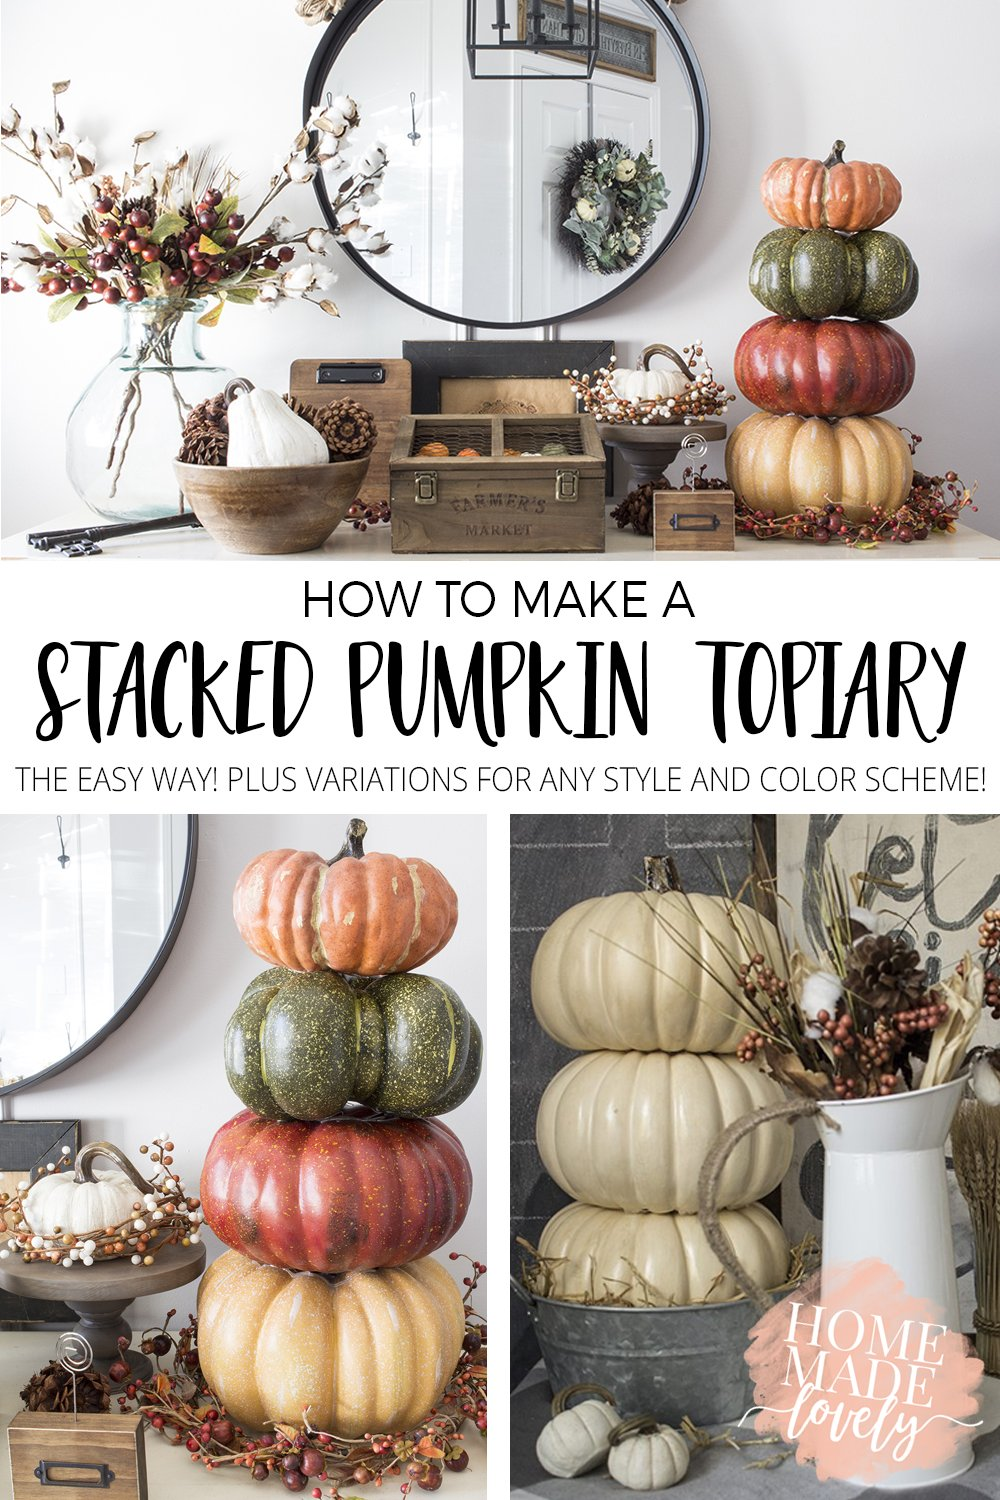 How To Make A Stacked Pumpkin Topiary The Easy Way